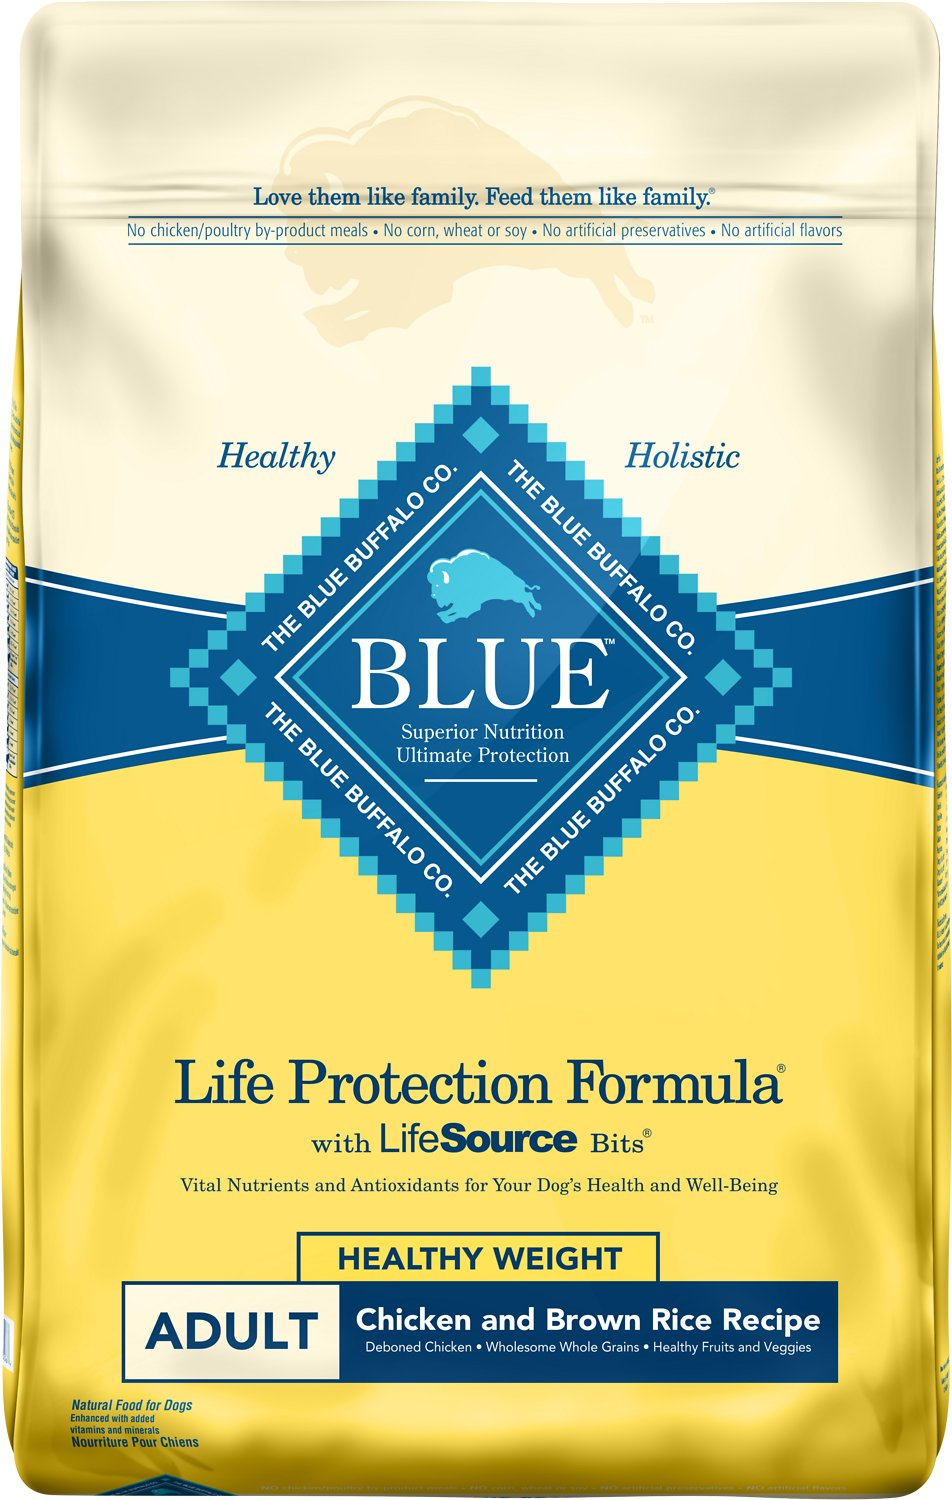 Blue Buffalo Life Protection Formula Healthy Weight Adult Chicken & Brown Rice Recipe Dry Dog Food Image